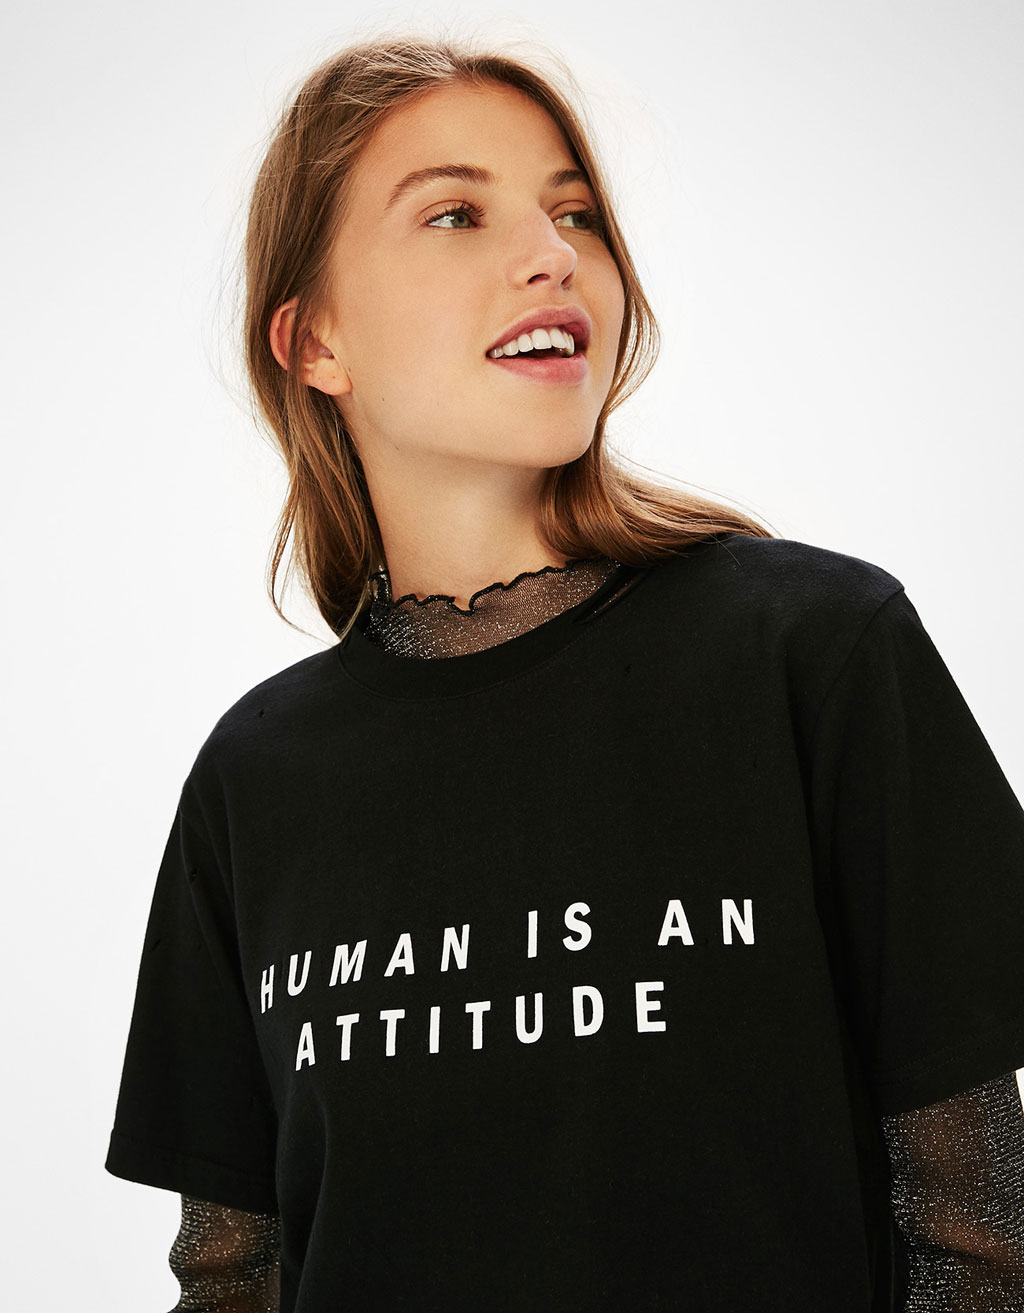 Ripped T-shirt with slogan